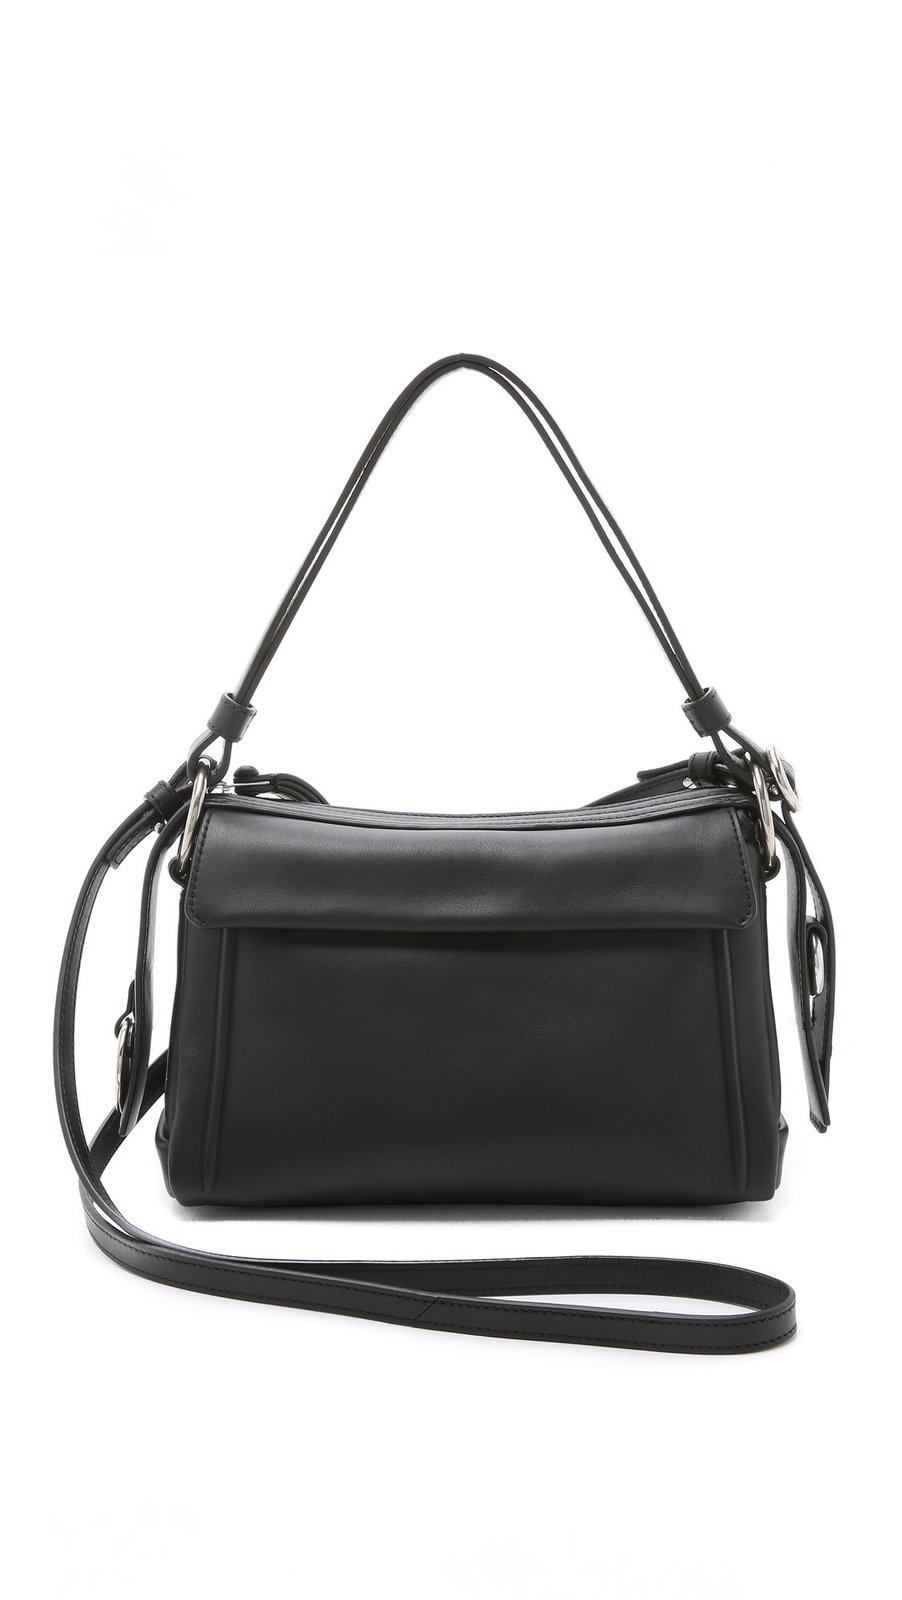 Marc by Marc Jacobs Prism 24 Satchel Convertible Shoulder Bag, Black, One Size